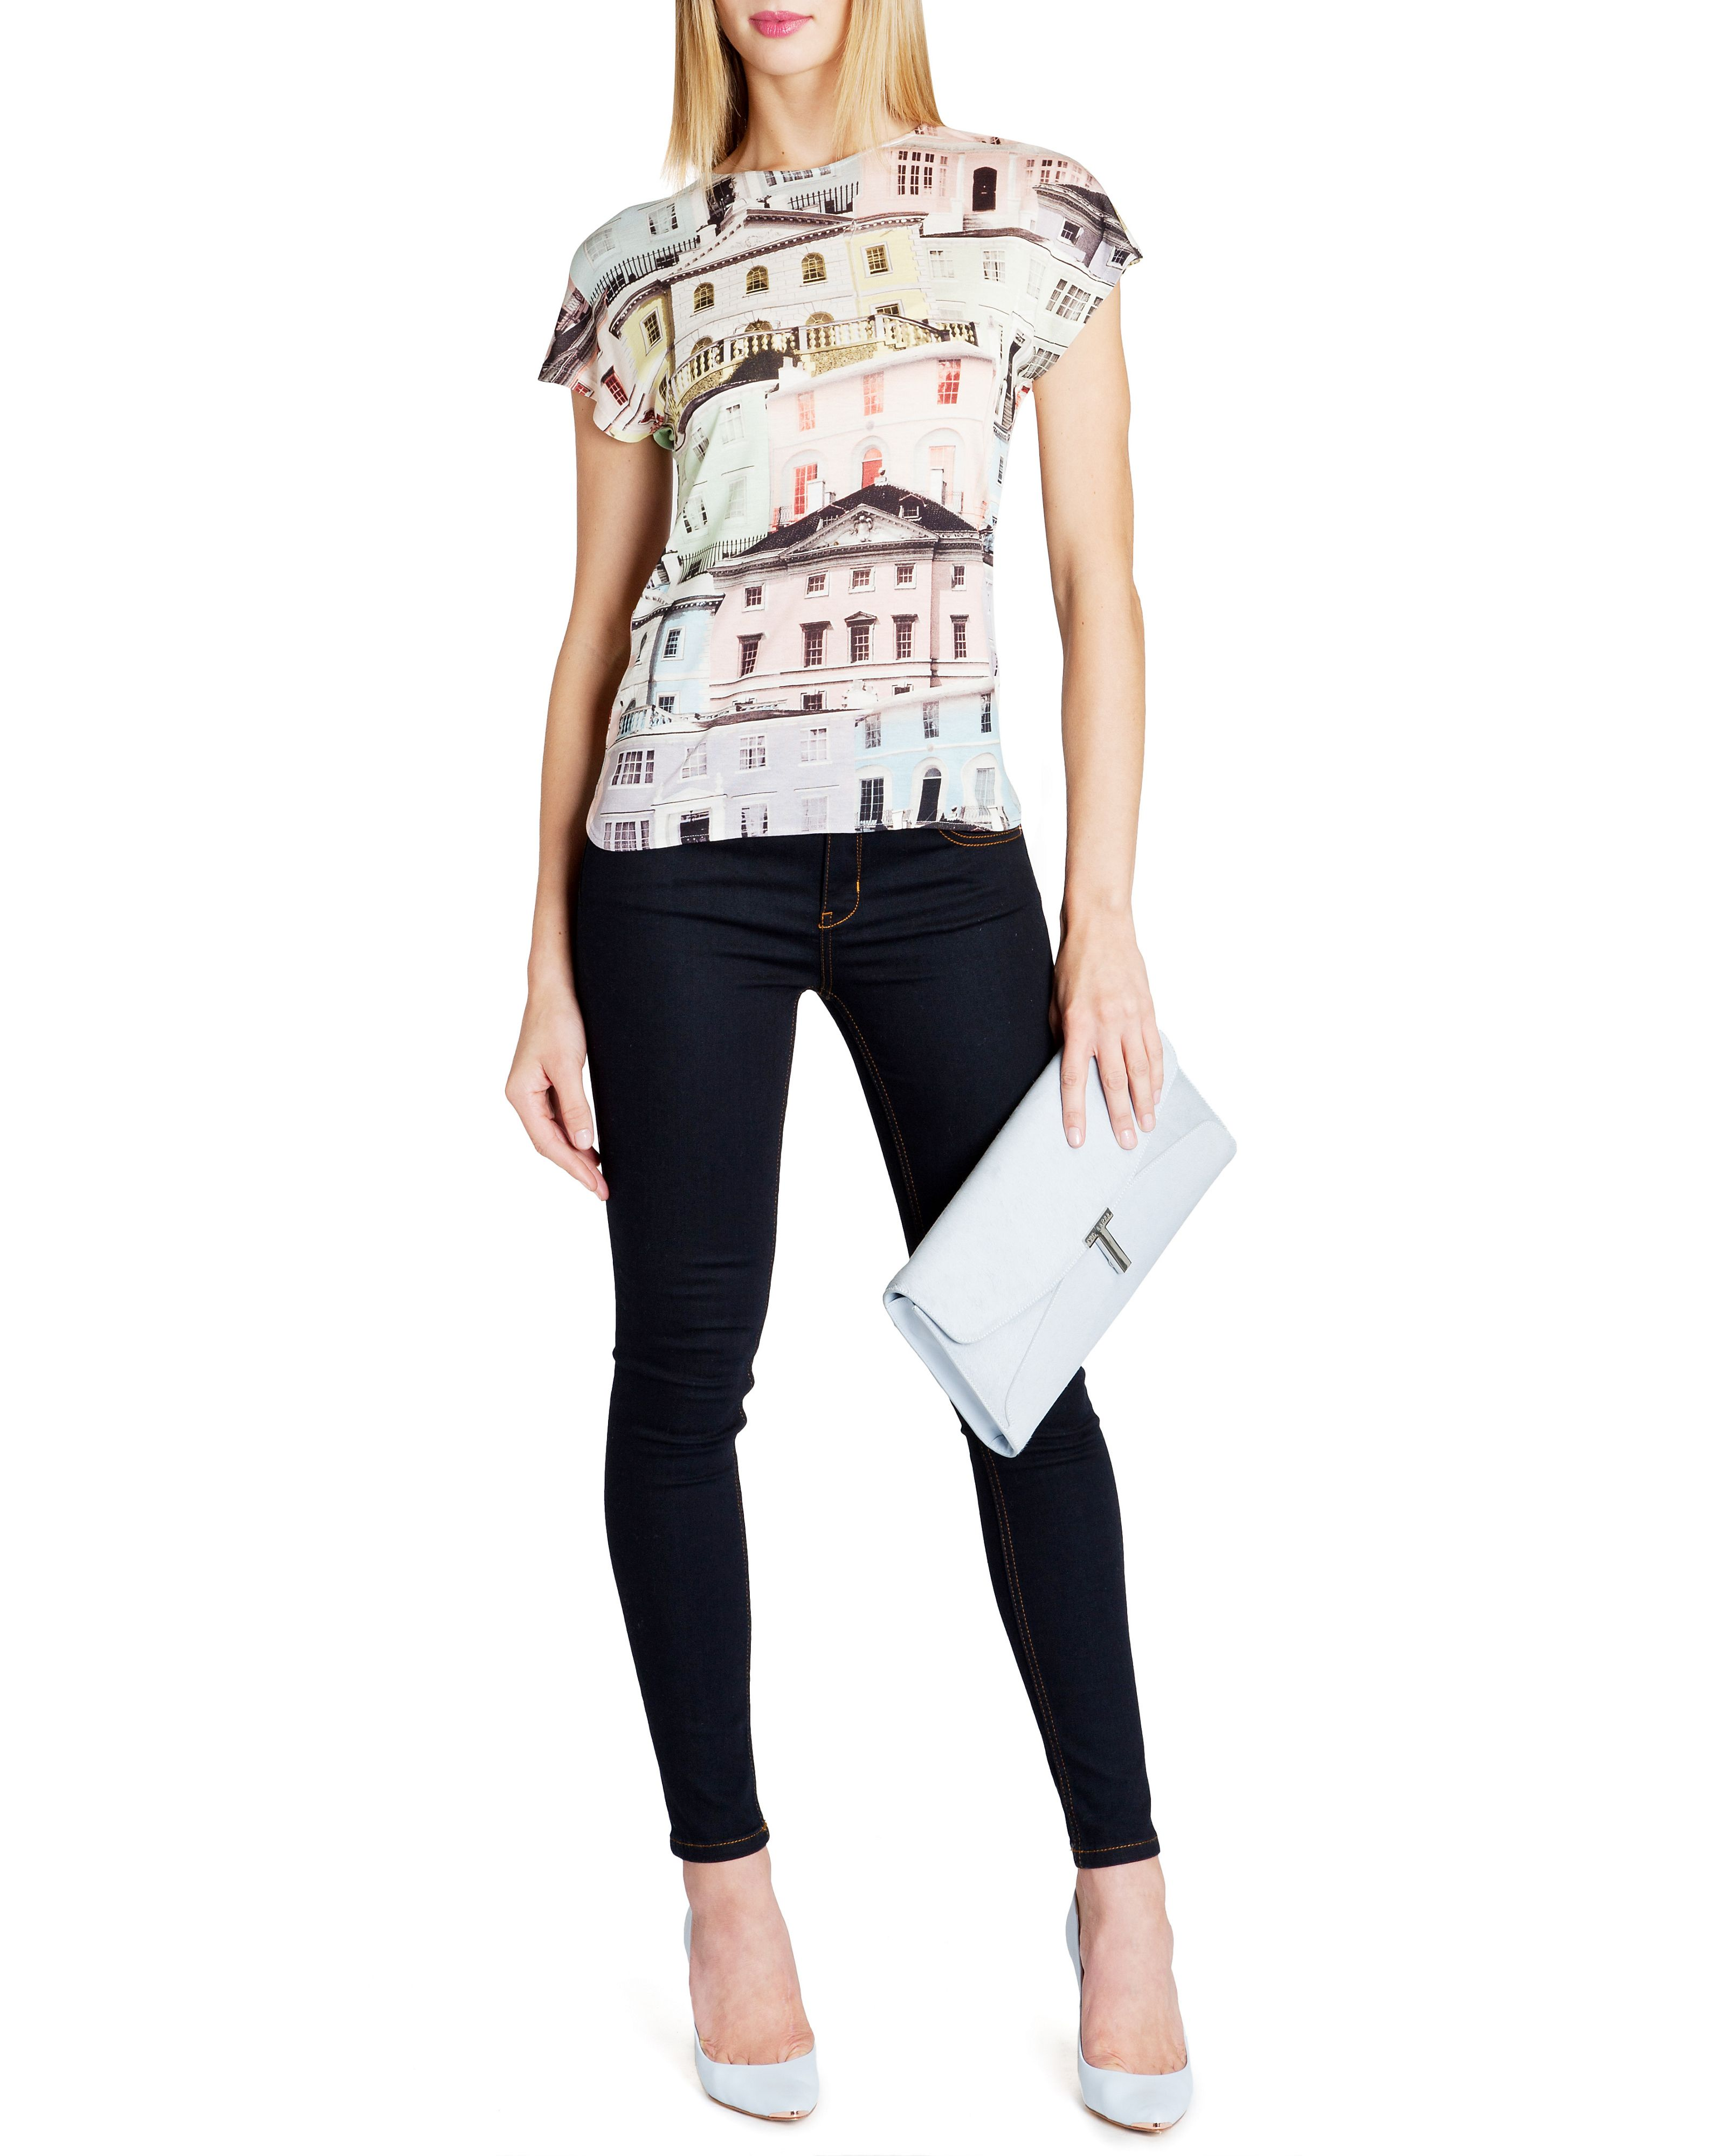 Keepa regency houses printed top